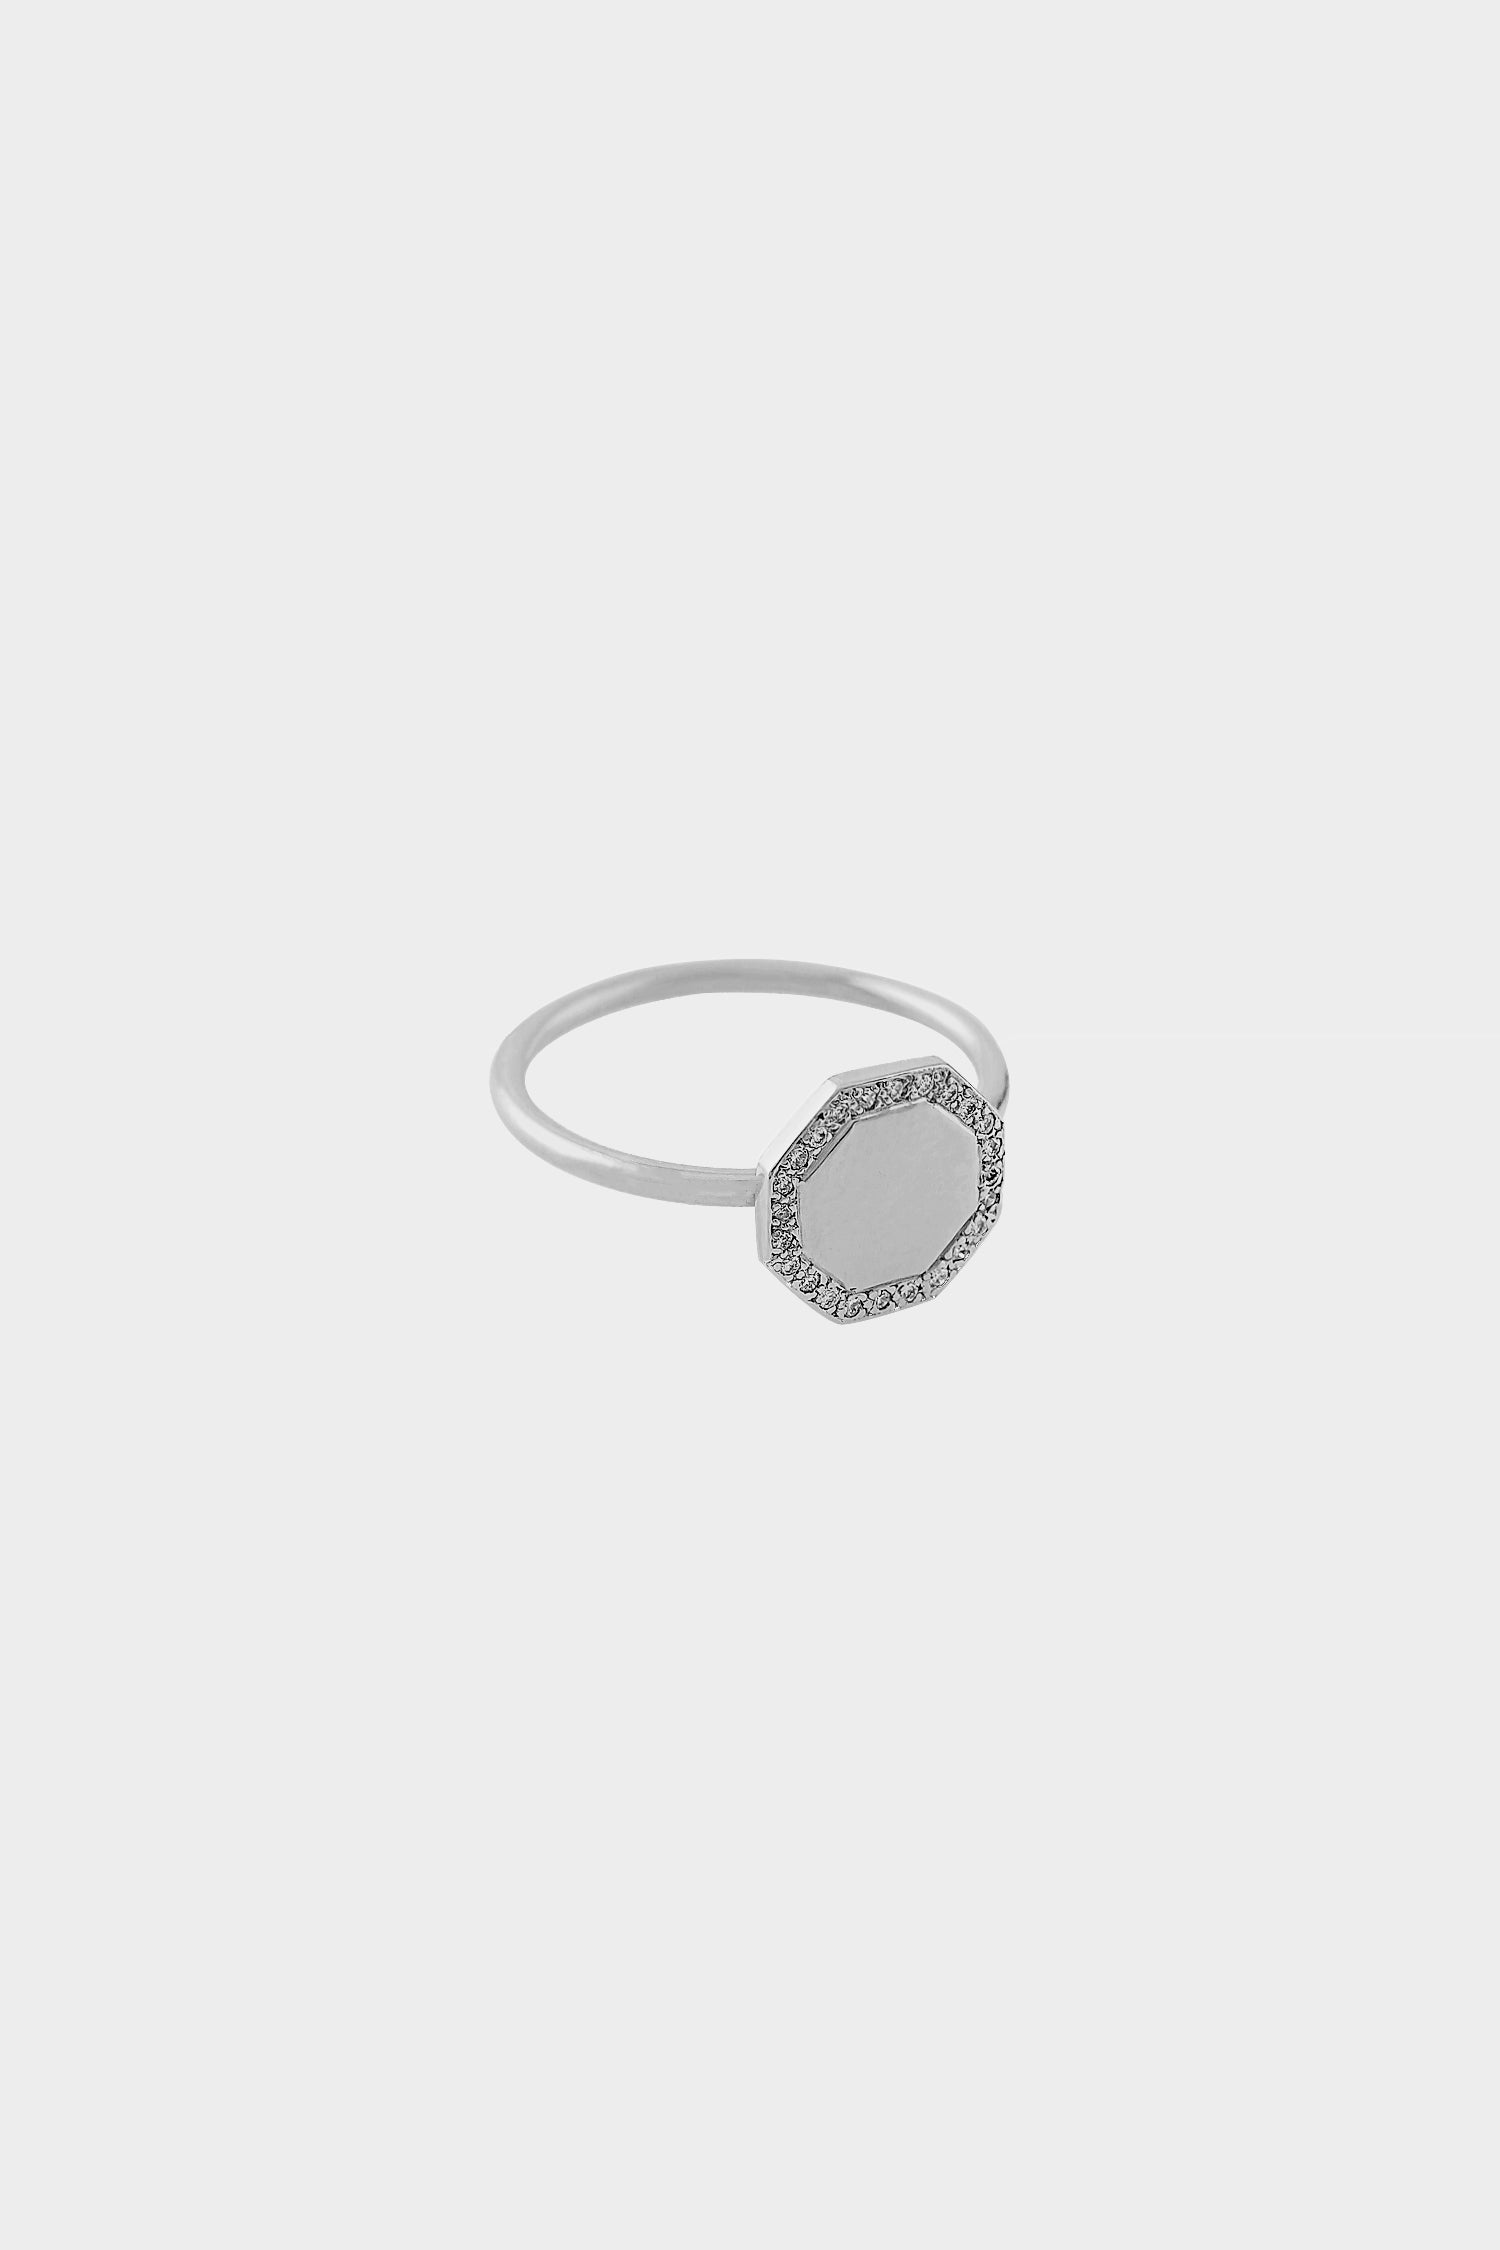 Octagon Ring with Diamonds | 14K White Gold